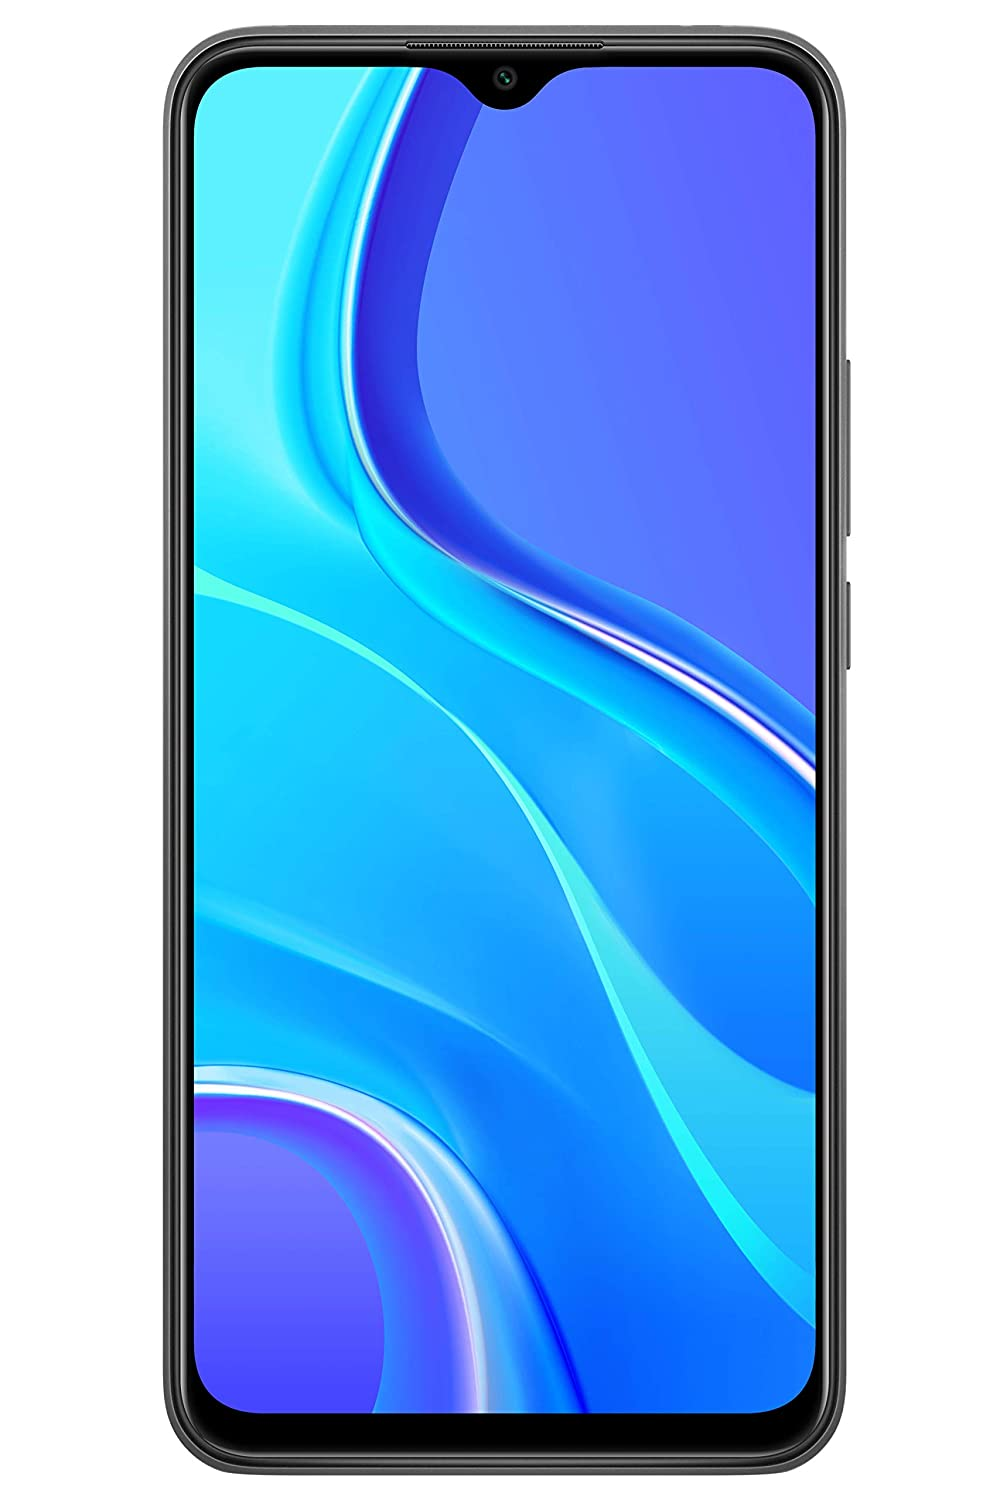 Redmi 9 Prime (Matte Black, 4GB RAM, 128GB Storage)- Full HD+ Display & AI Quad Camera